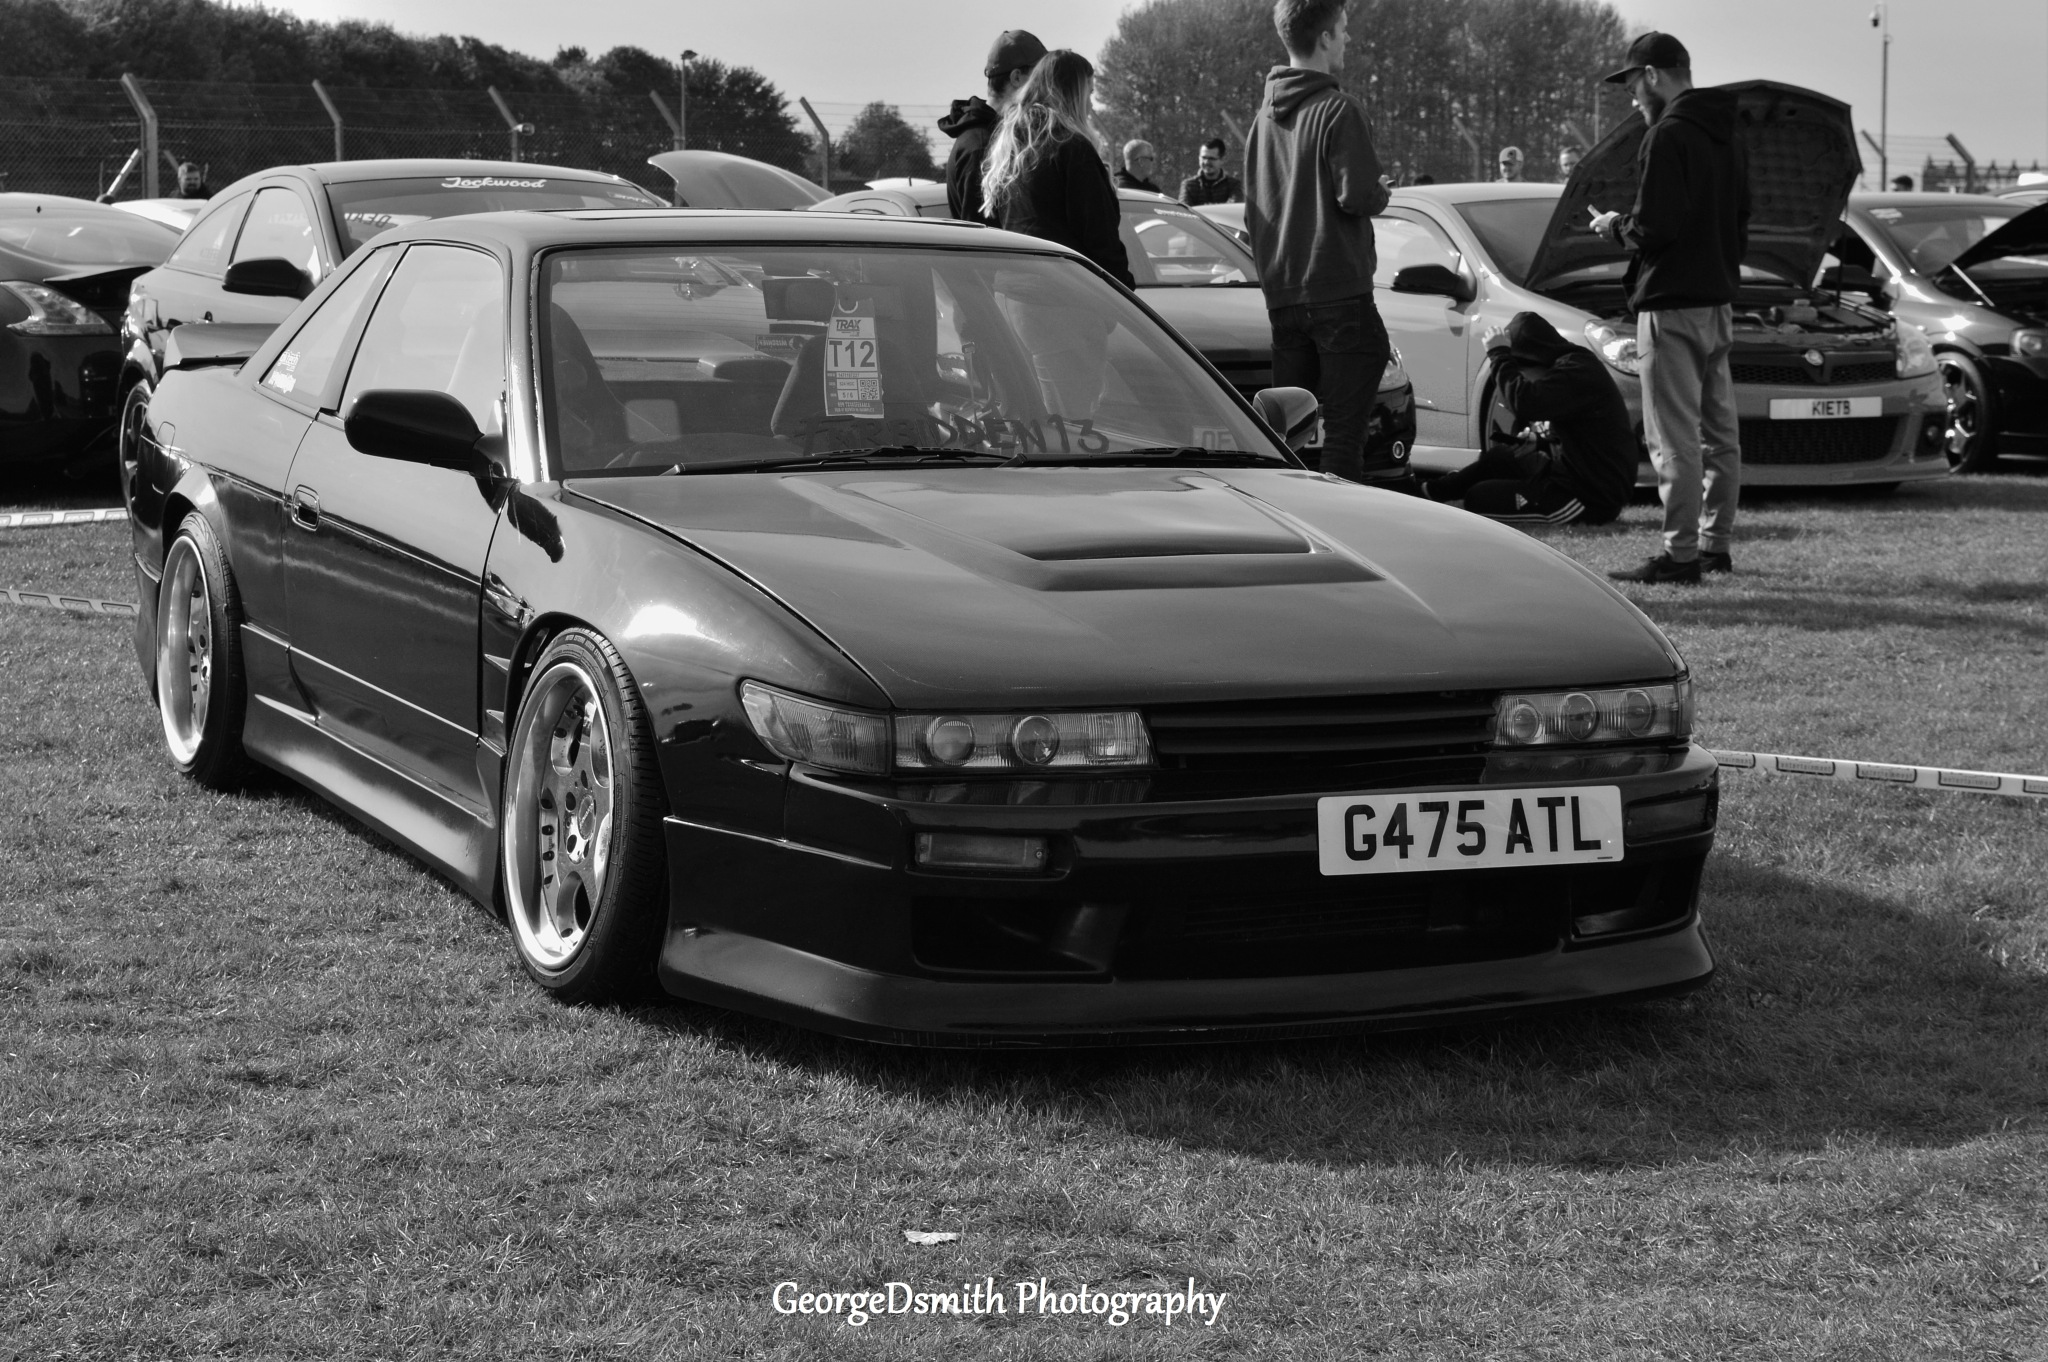 Nissan S13 by GeorgeDSmith Photography